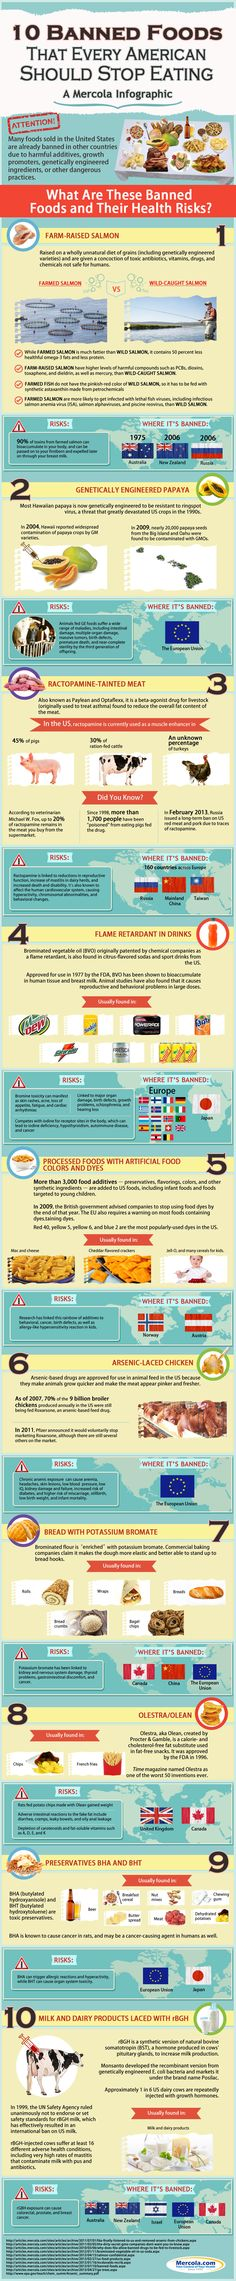 Foods that are banne